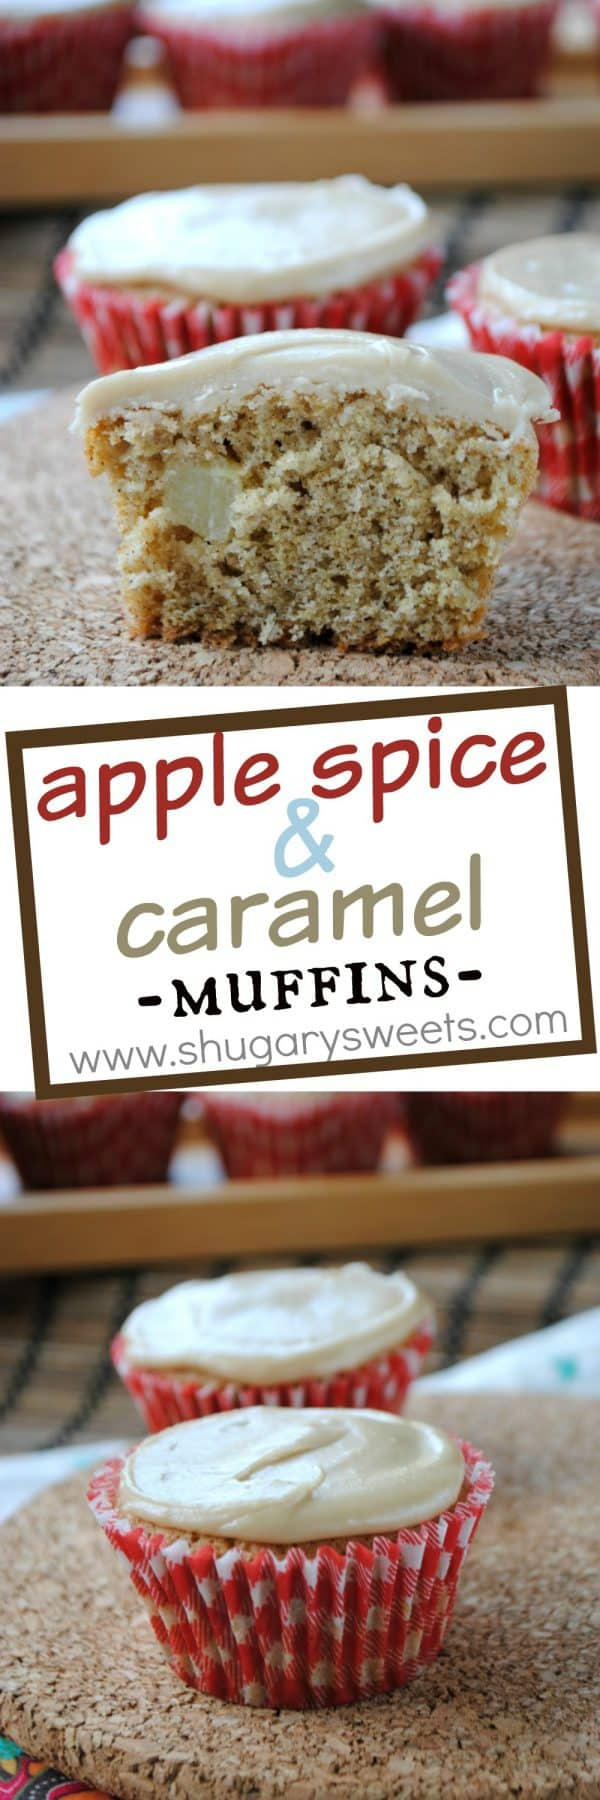 Apple Spice Muffins with Caramel Glaze: perfect recipe for breakfast, brunch or dessert!